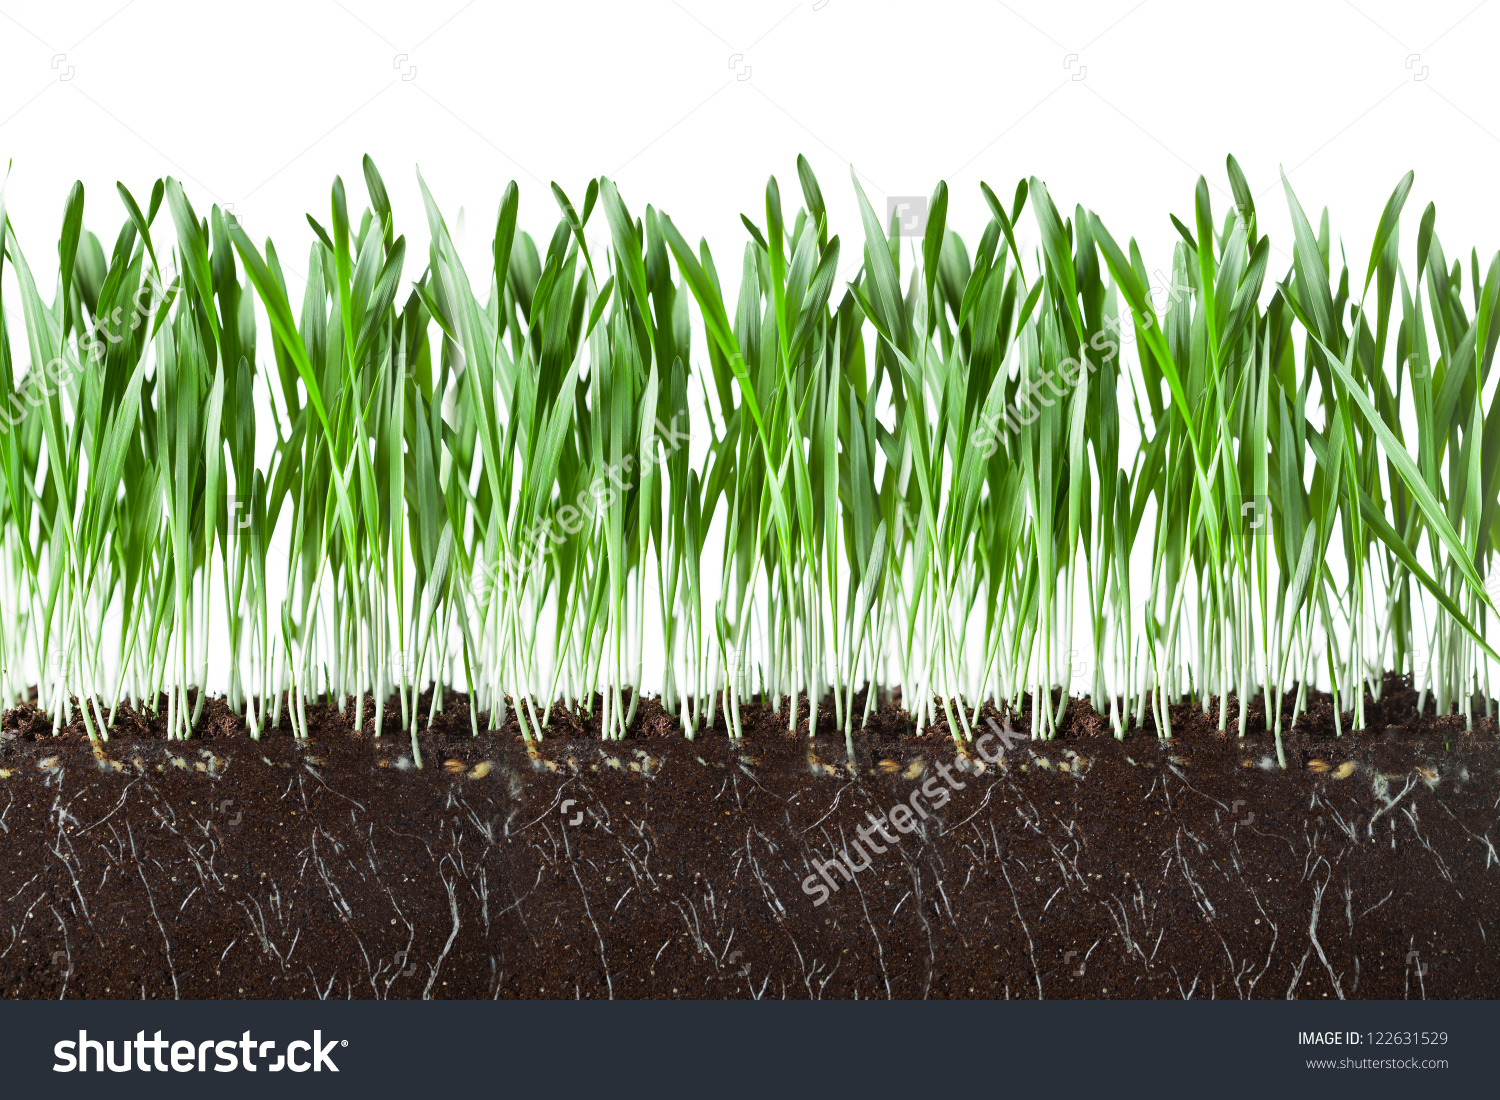 Oat Grass Roots Soil Crosscut Section Stock Photo 122631529.